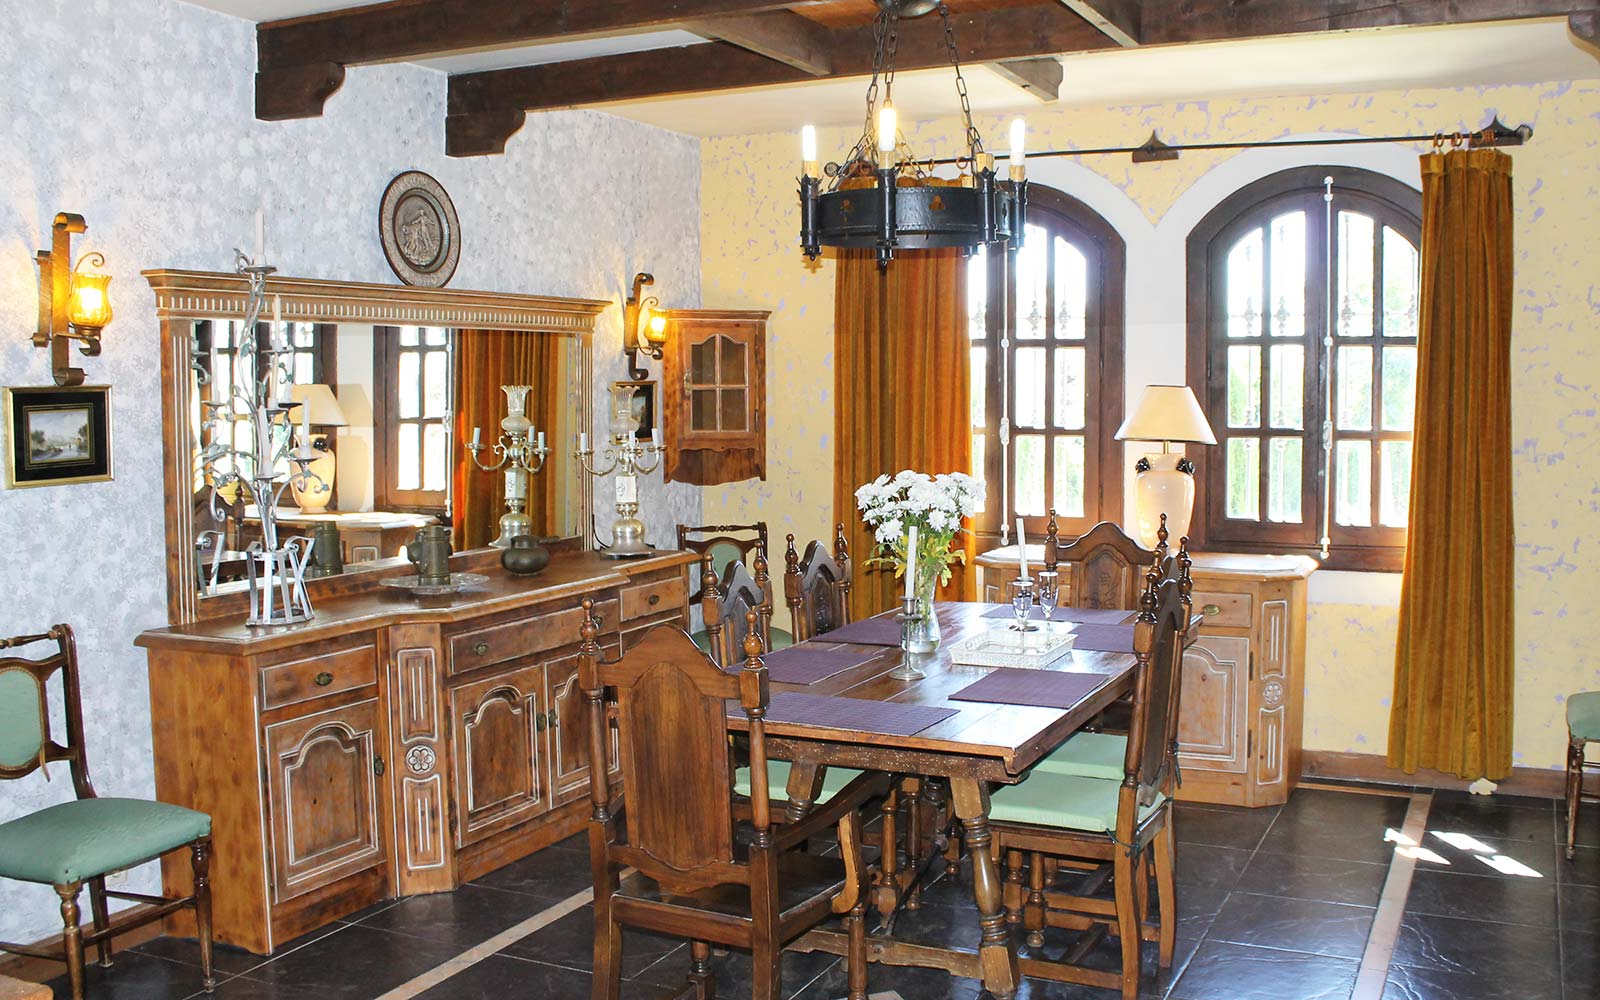 Costa Del Sol Medieval Drawbridge Castle for Sale Spain dining room